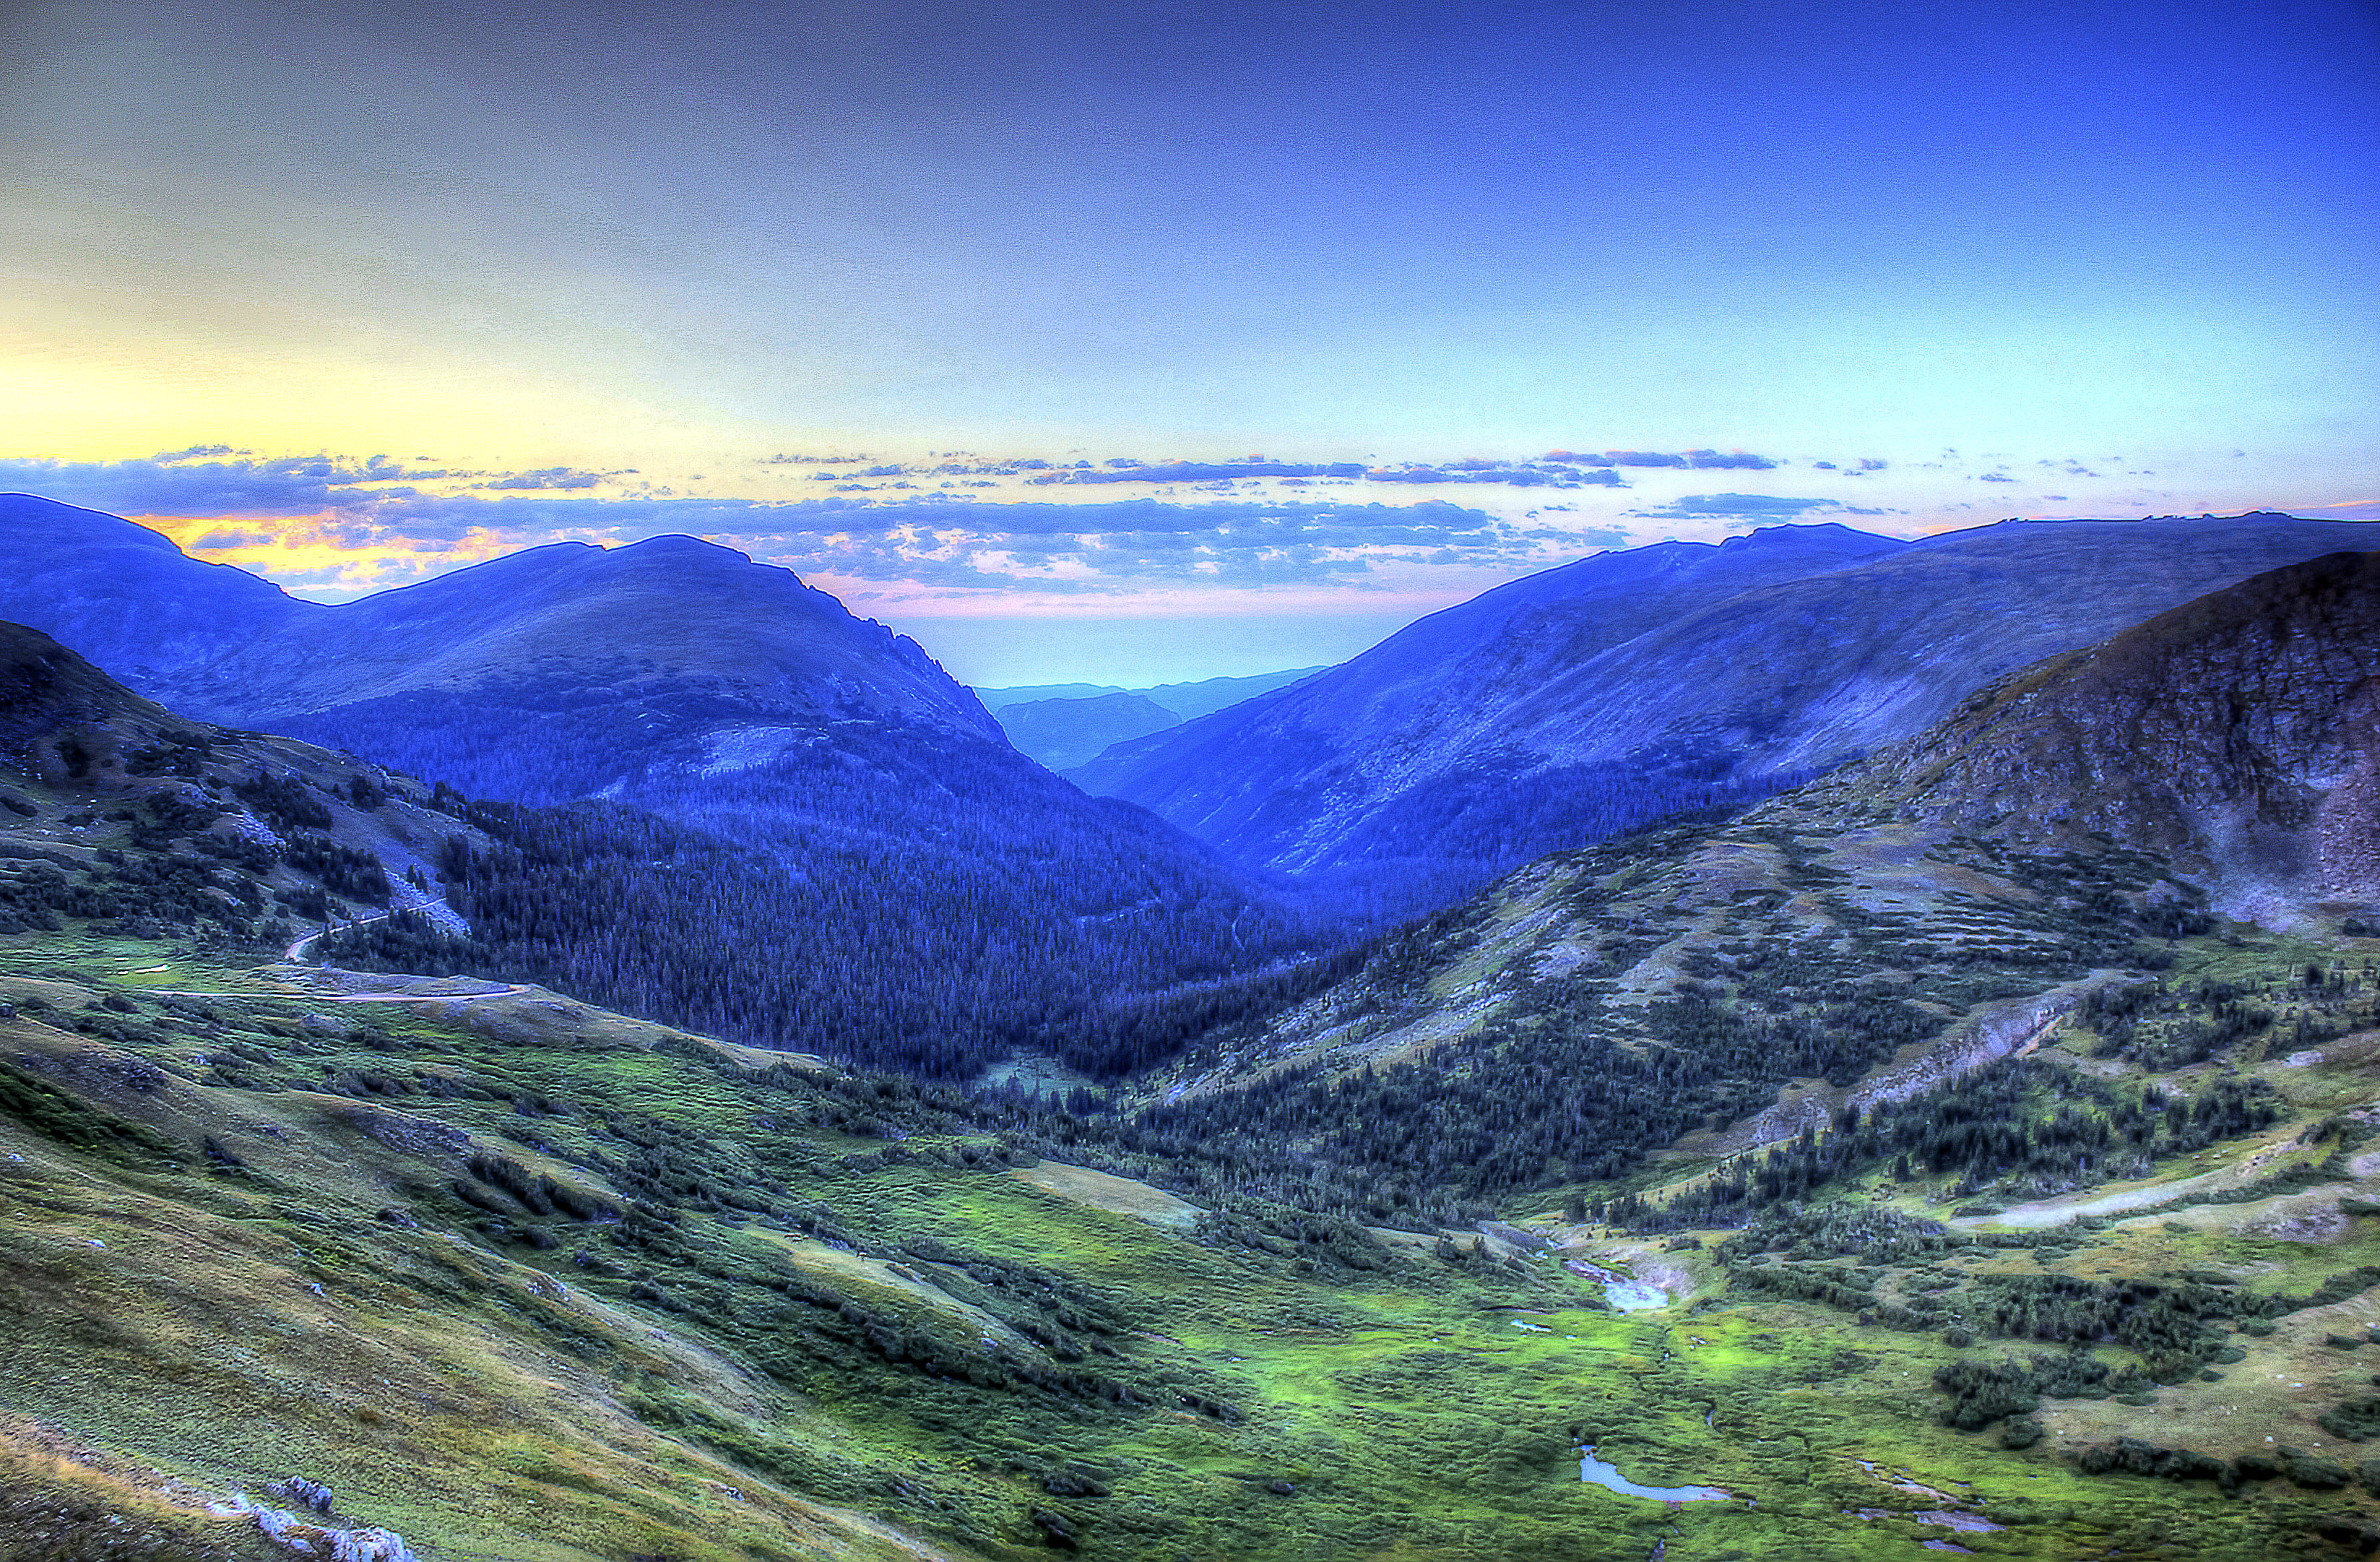 Scenic Mountains in the Morning at Rocky Mountains National Park ...